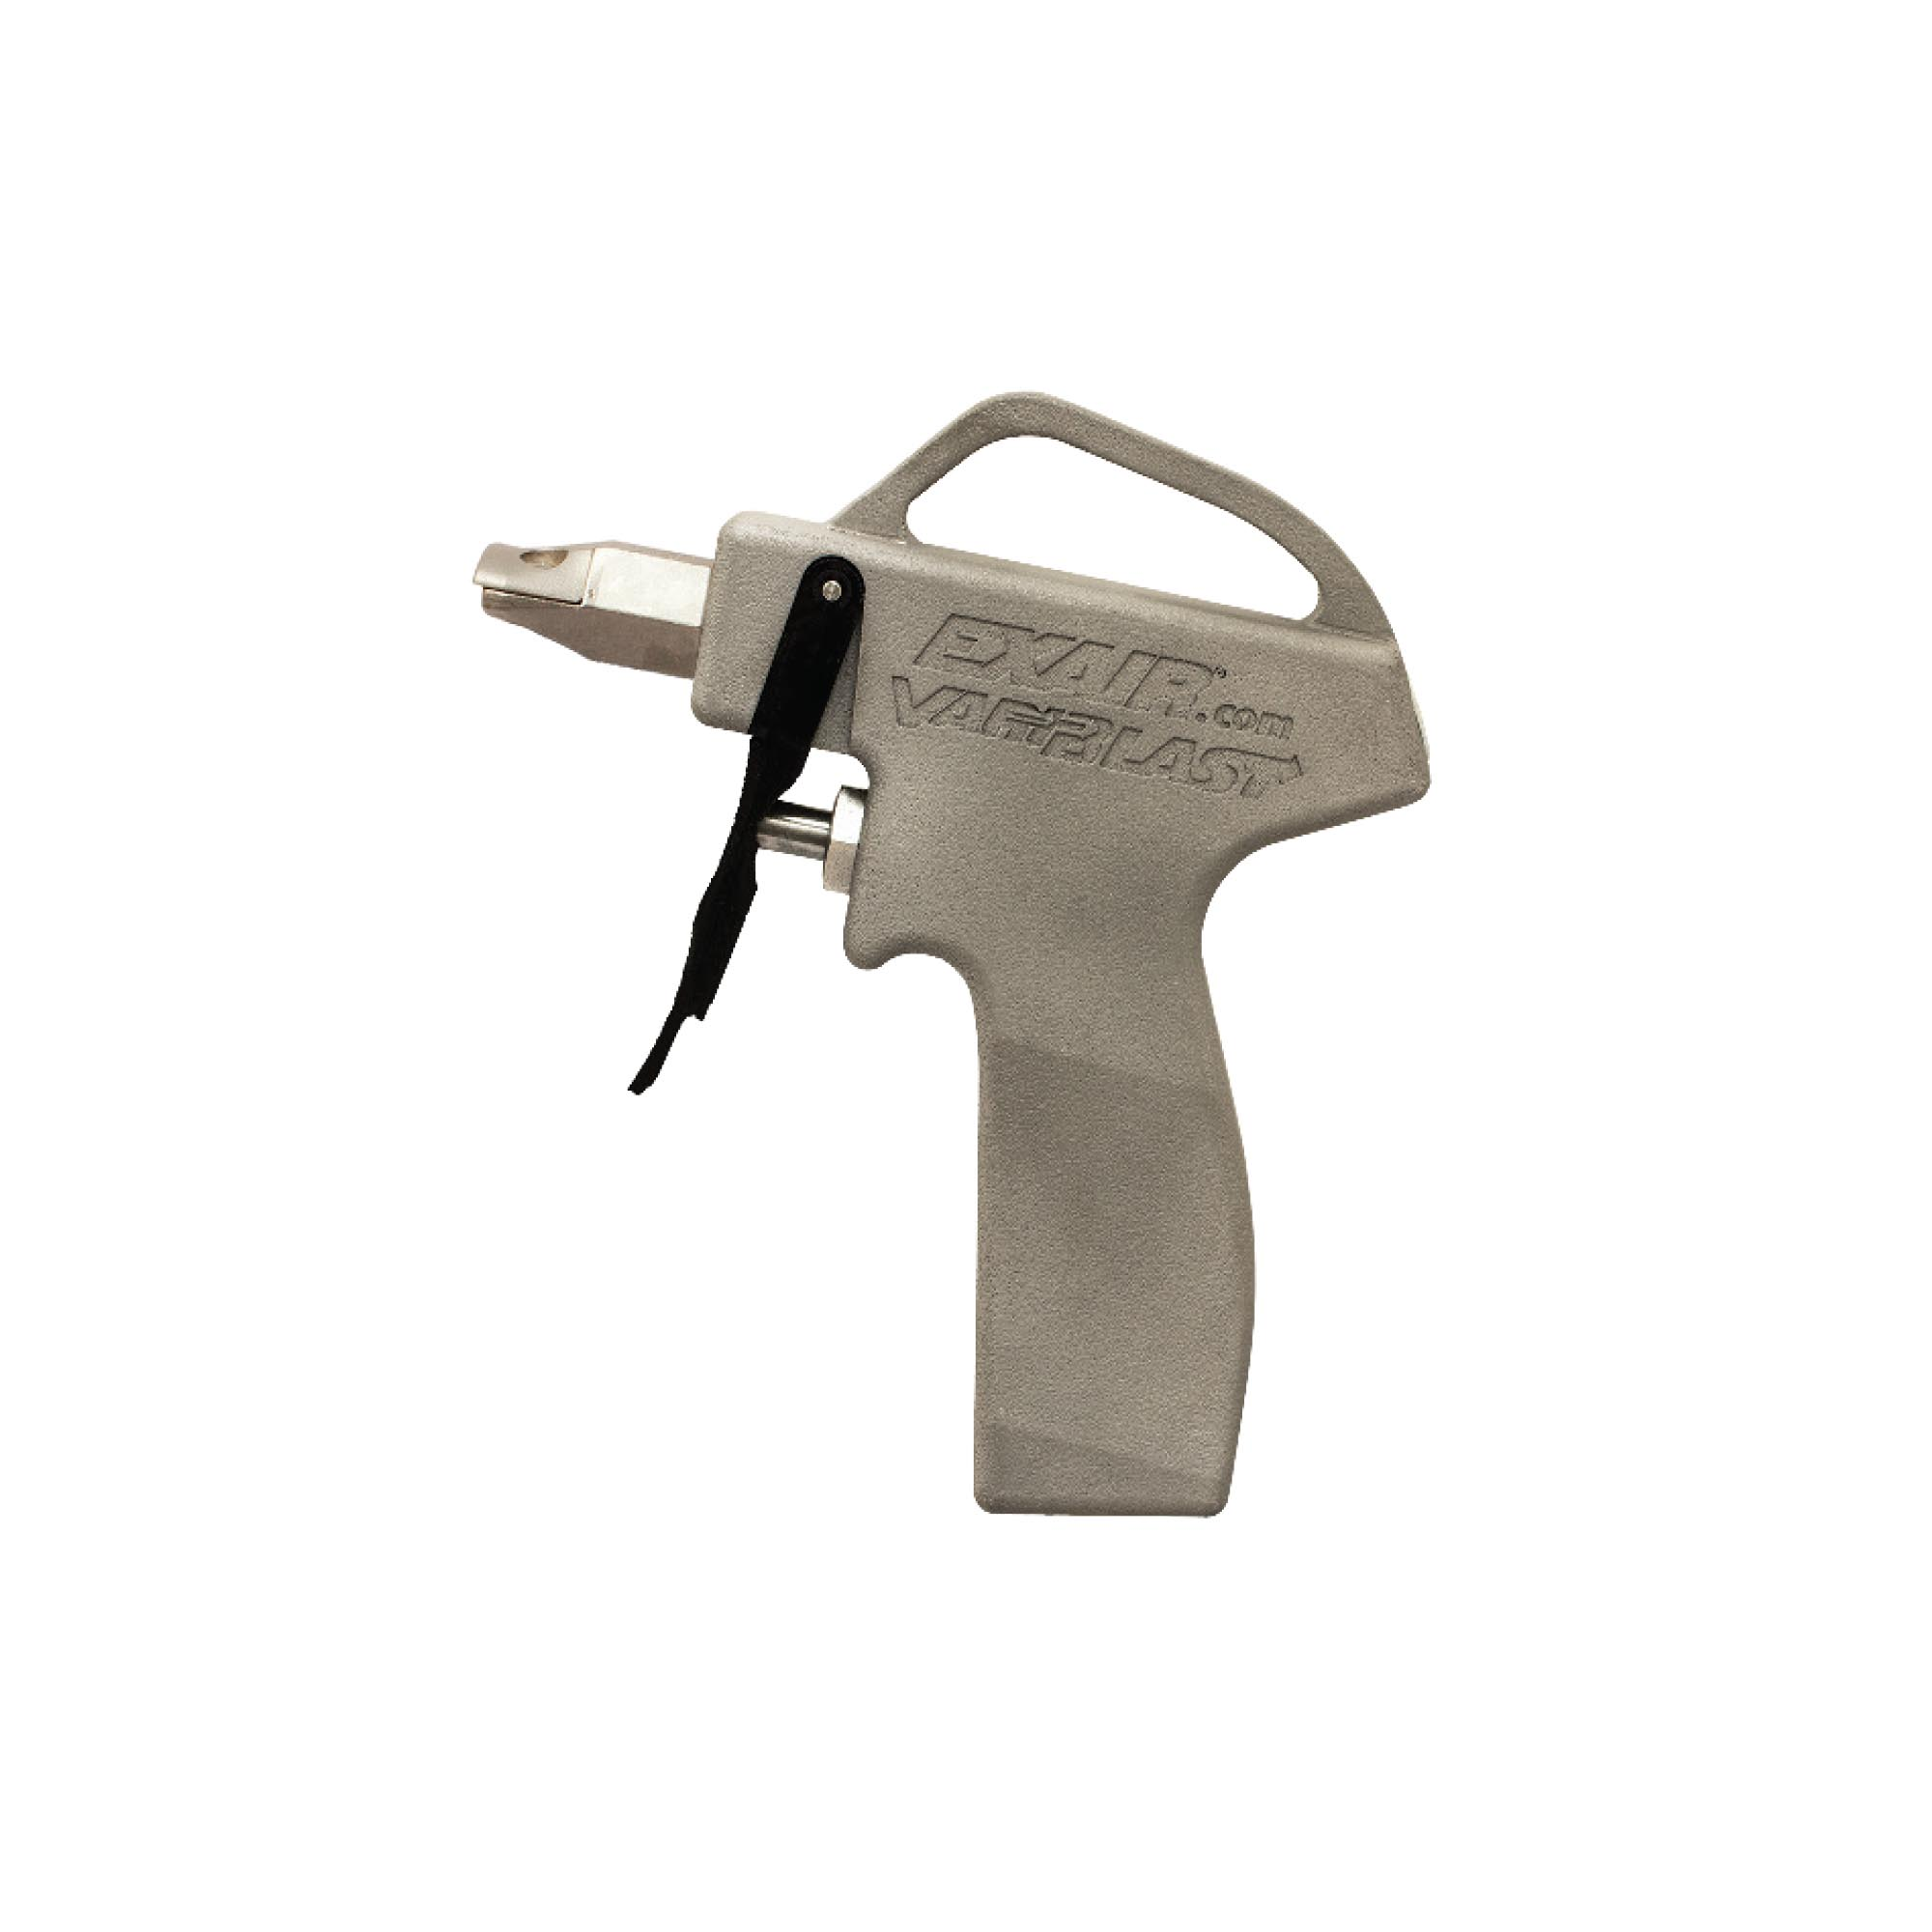 VariBlast Compact Safety Air Gun with 1108SS Stainless Steel Atto Super Air Nozzle